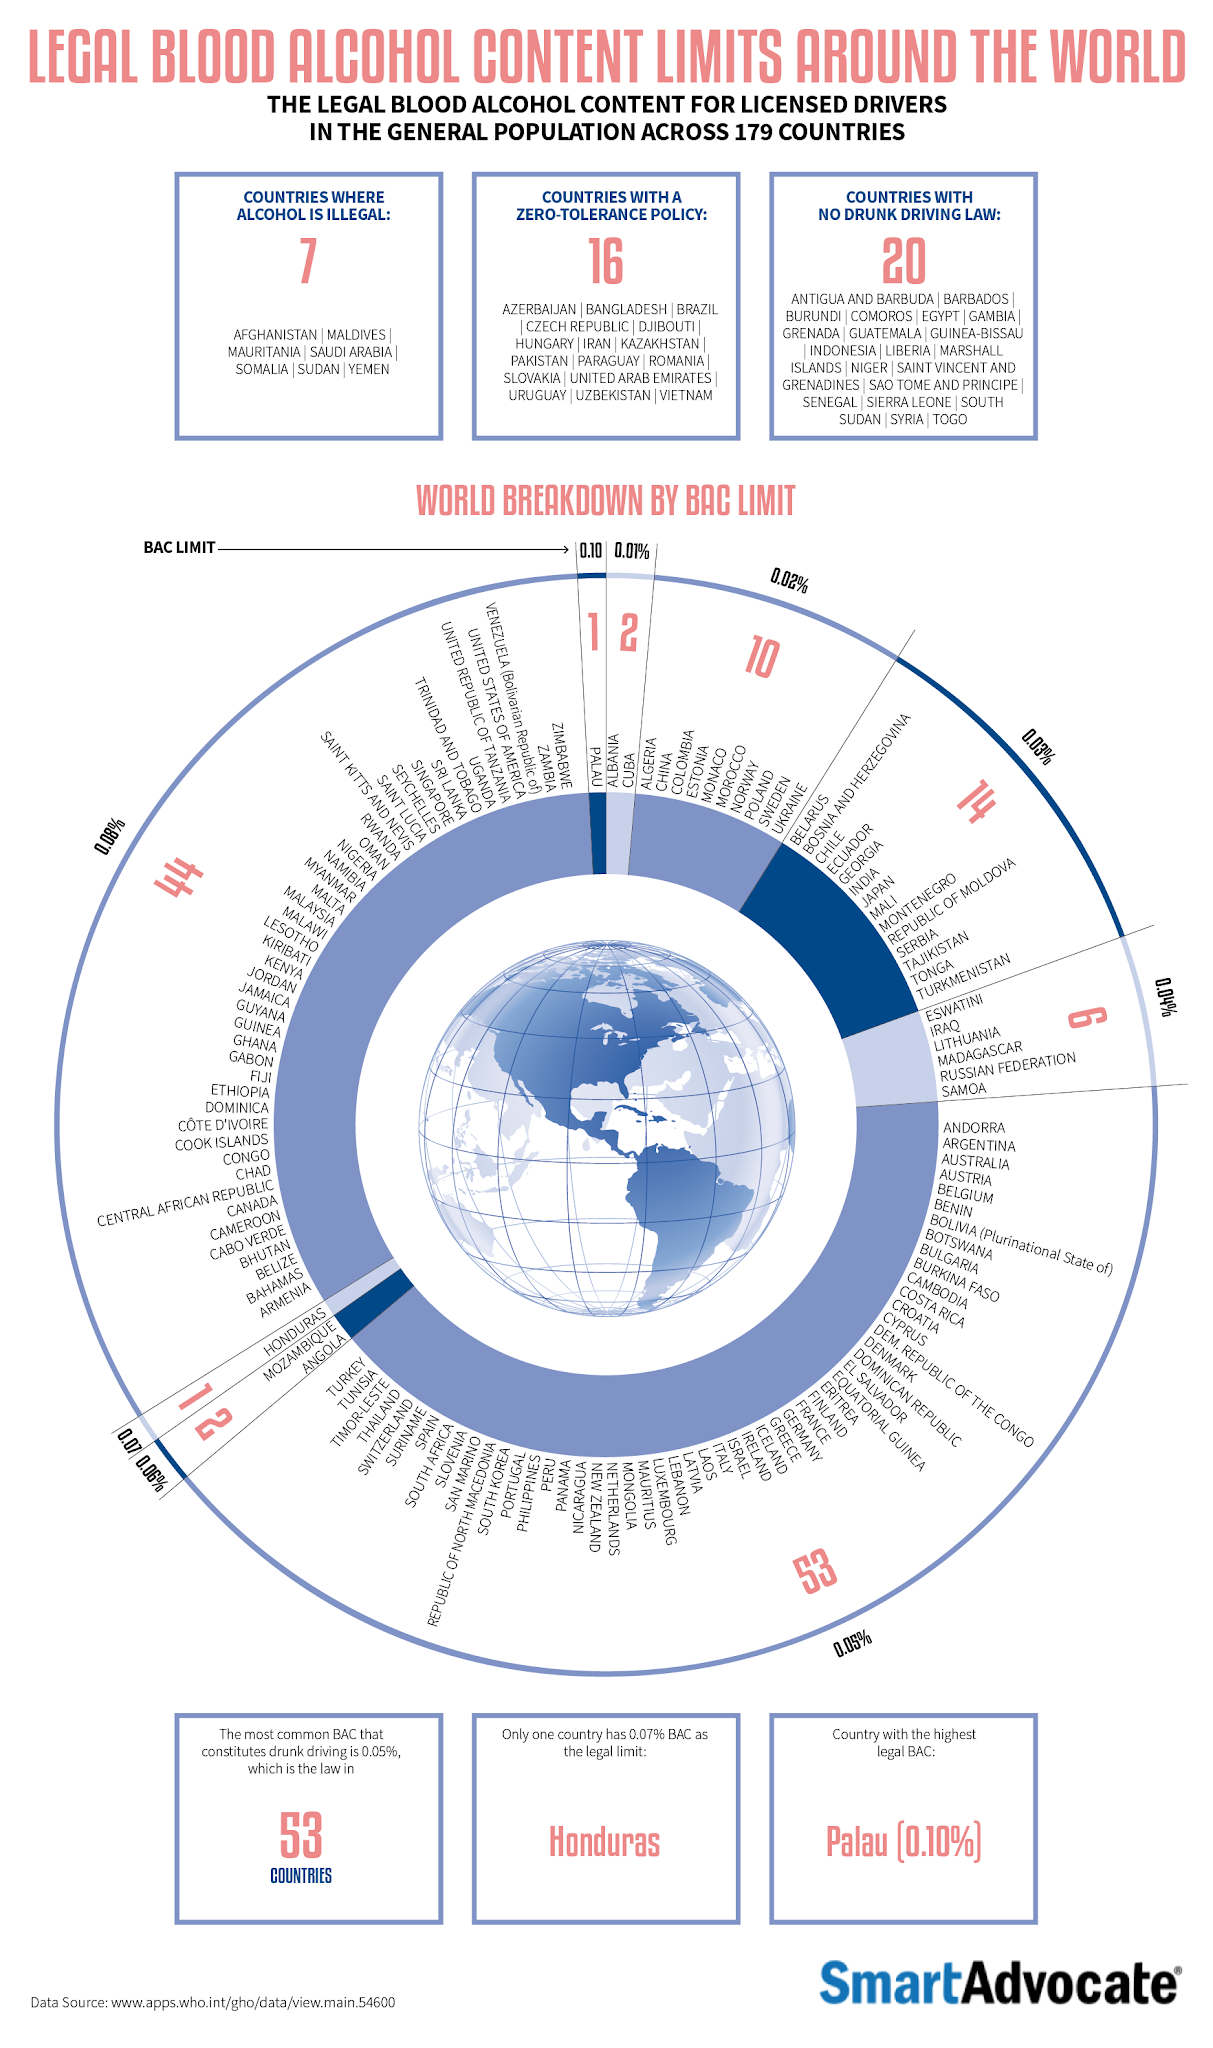 Legal Blood Alcohol Content Limits Around the World #infographic